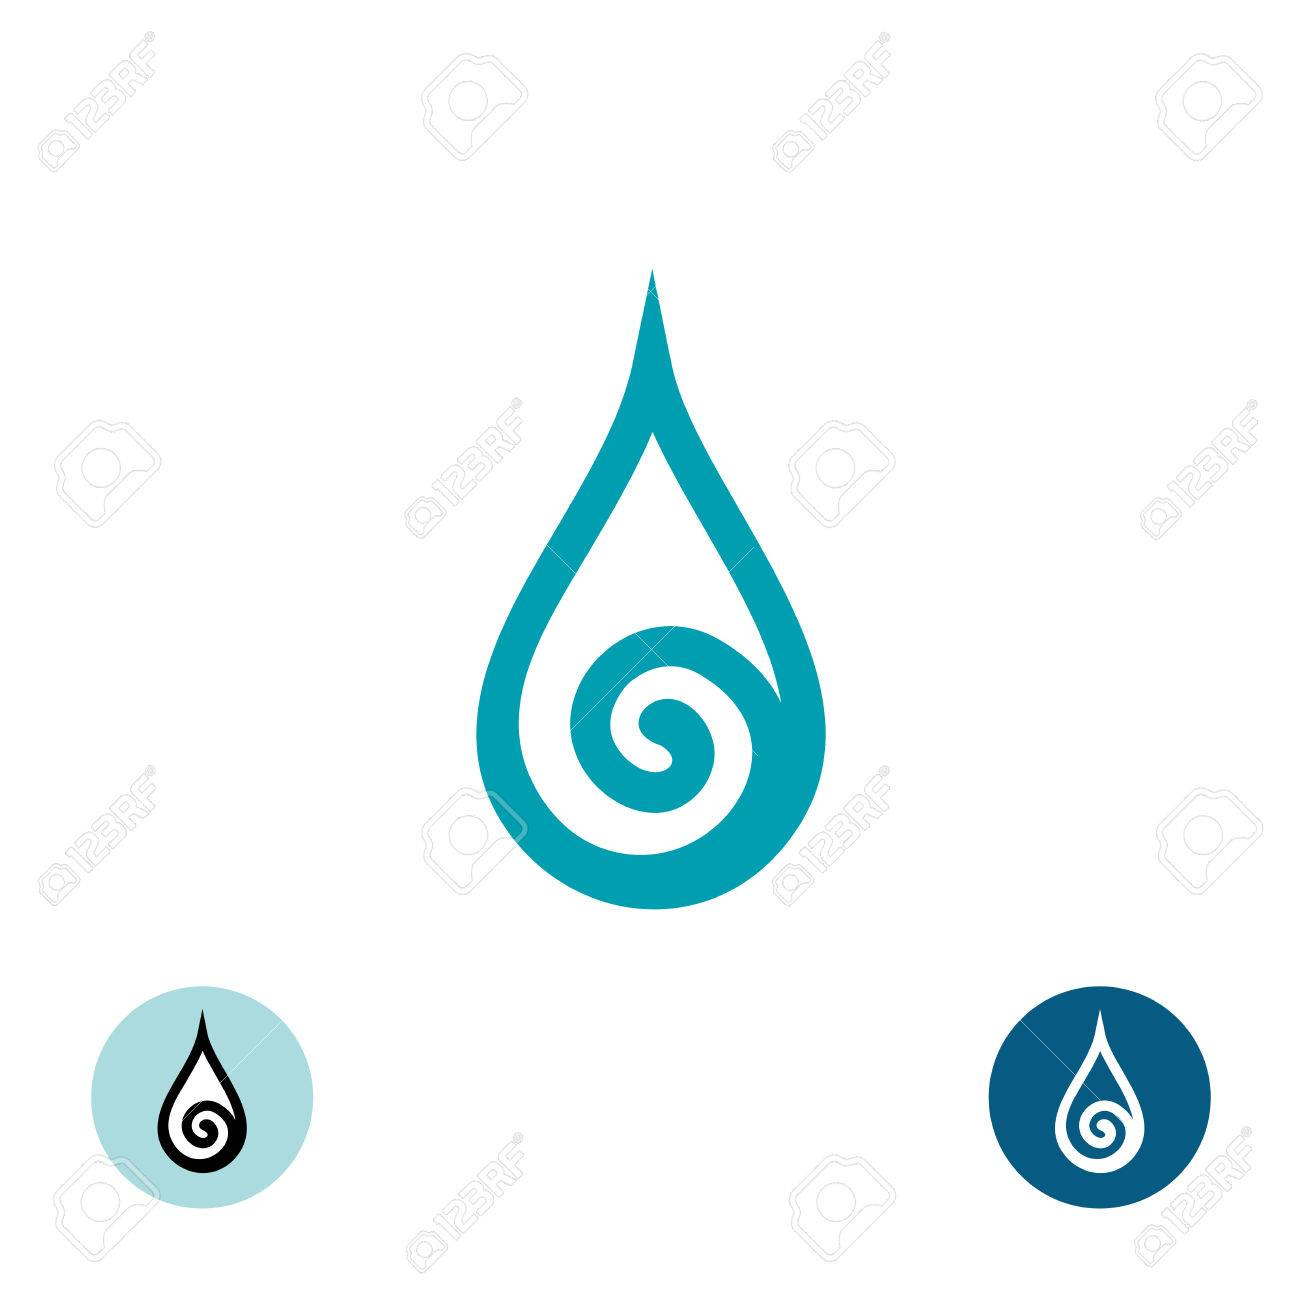 Water drop with spiral symbol royalty free cliparts vectors and water drop with spiral symbol stock vector 47969267 biocorpaavc Image collections